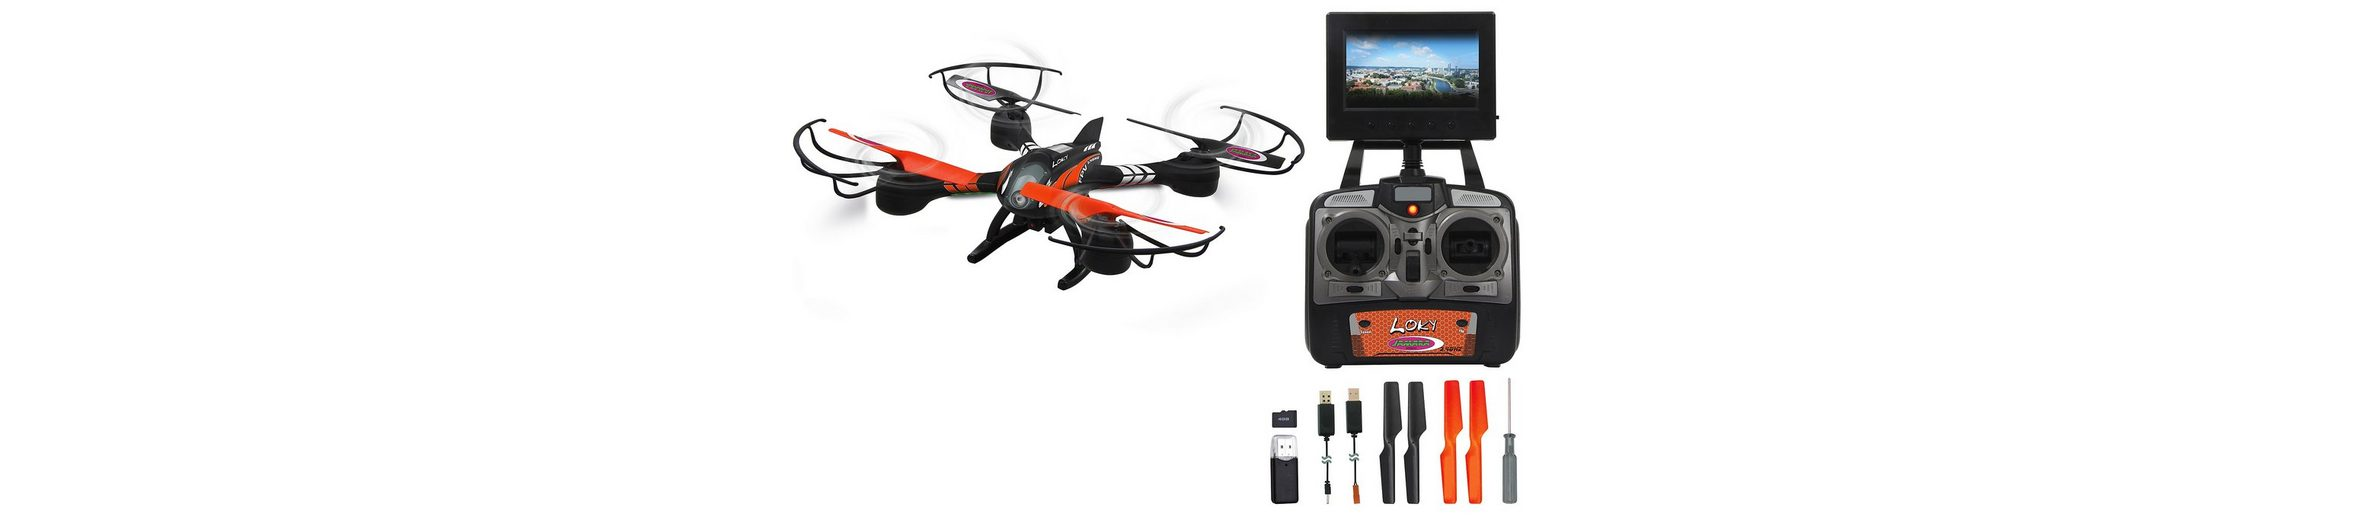 JAMARA Quadrocopter mit Display und Kamera, 2,4 GHz, »Loky«